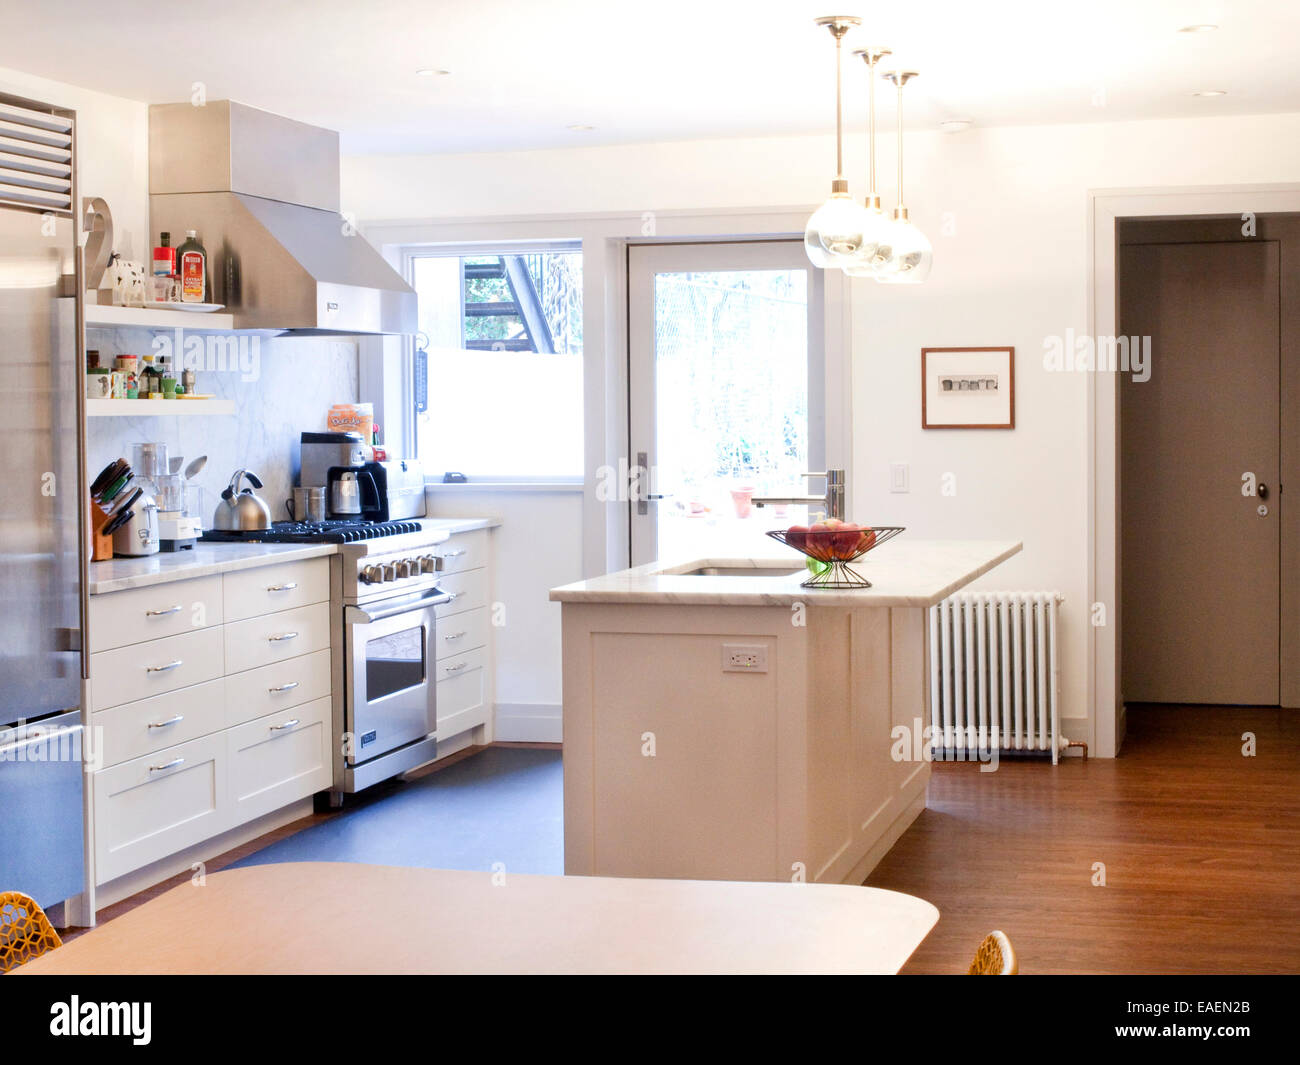 contemporary kitchen - Stock Image